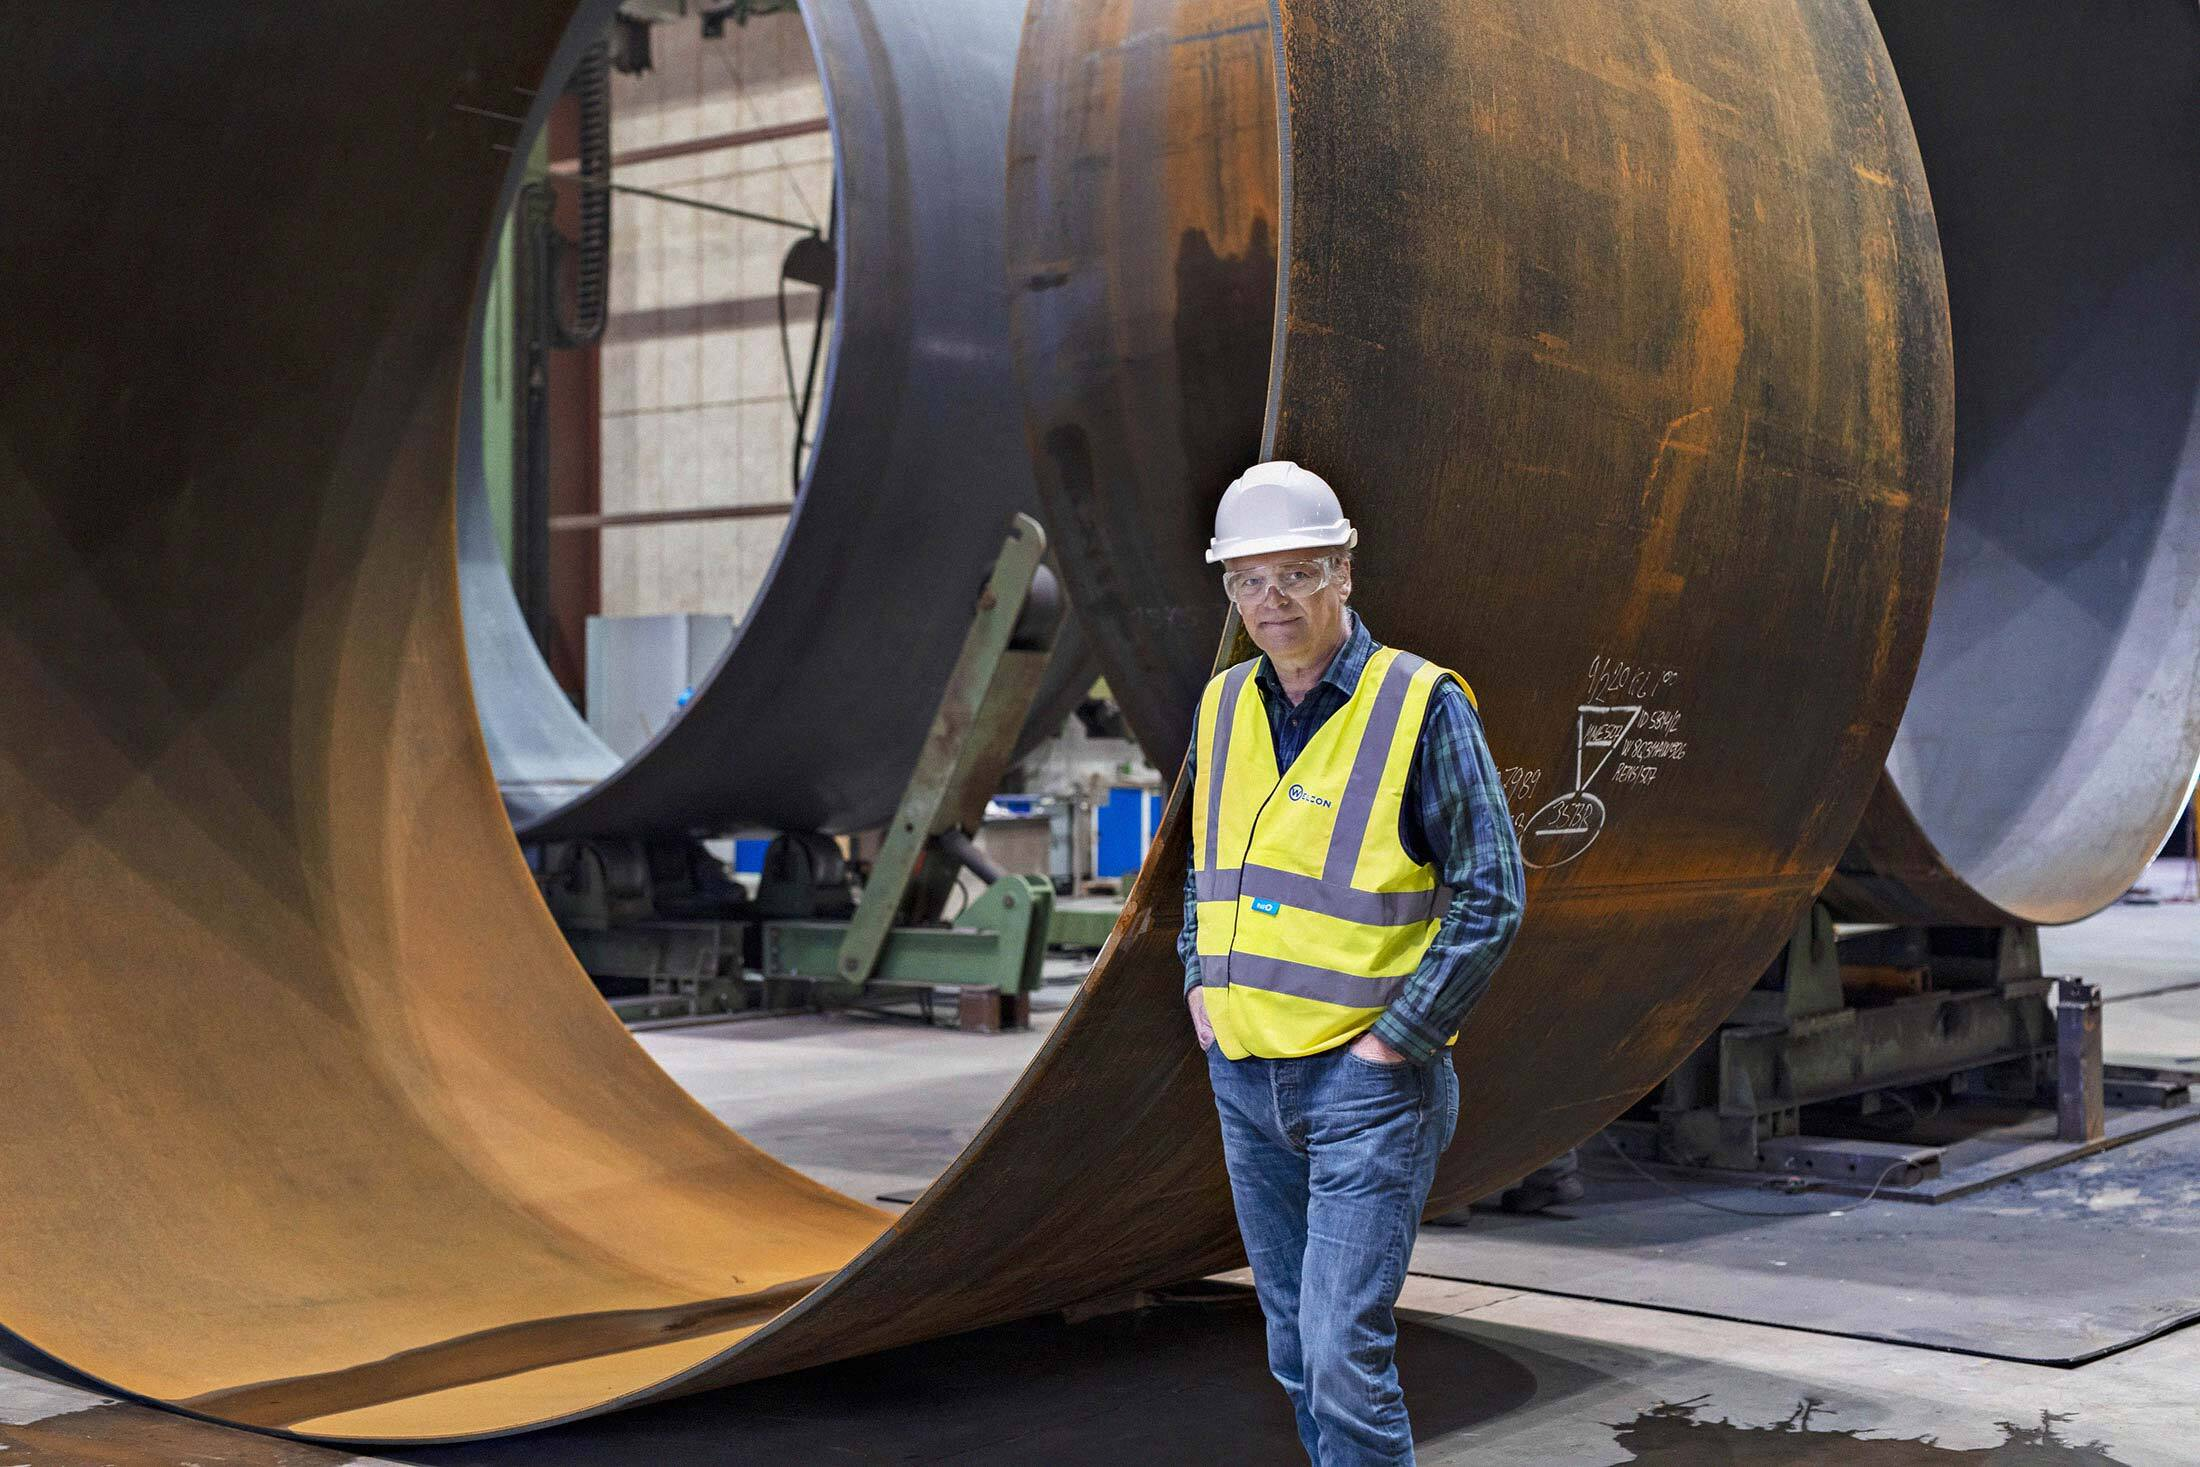 relates to Inventor of Wind Turbine Is Trying to Harness Unlimited Power